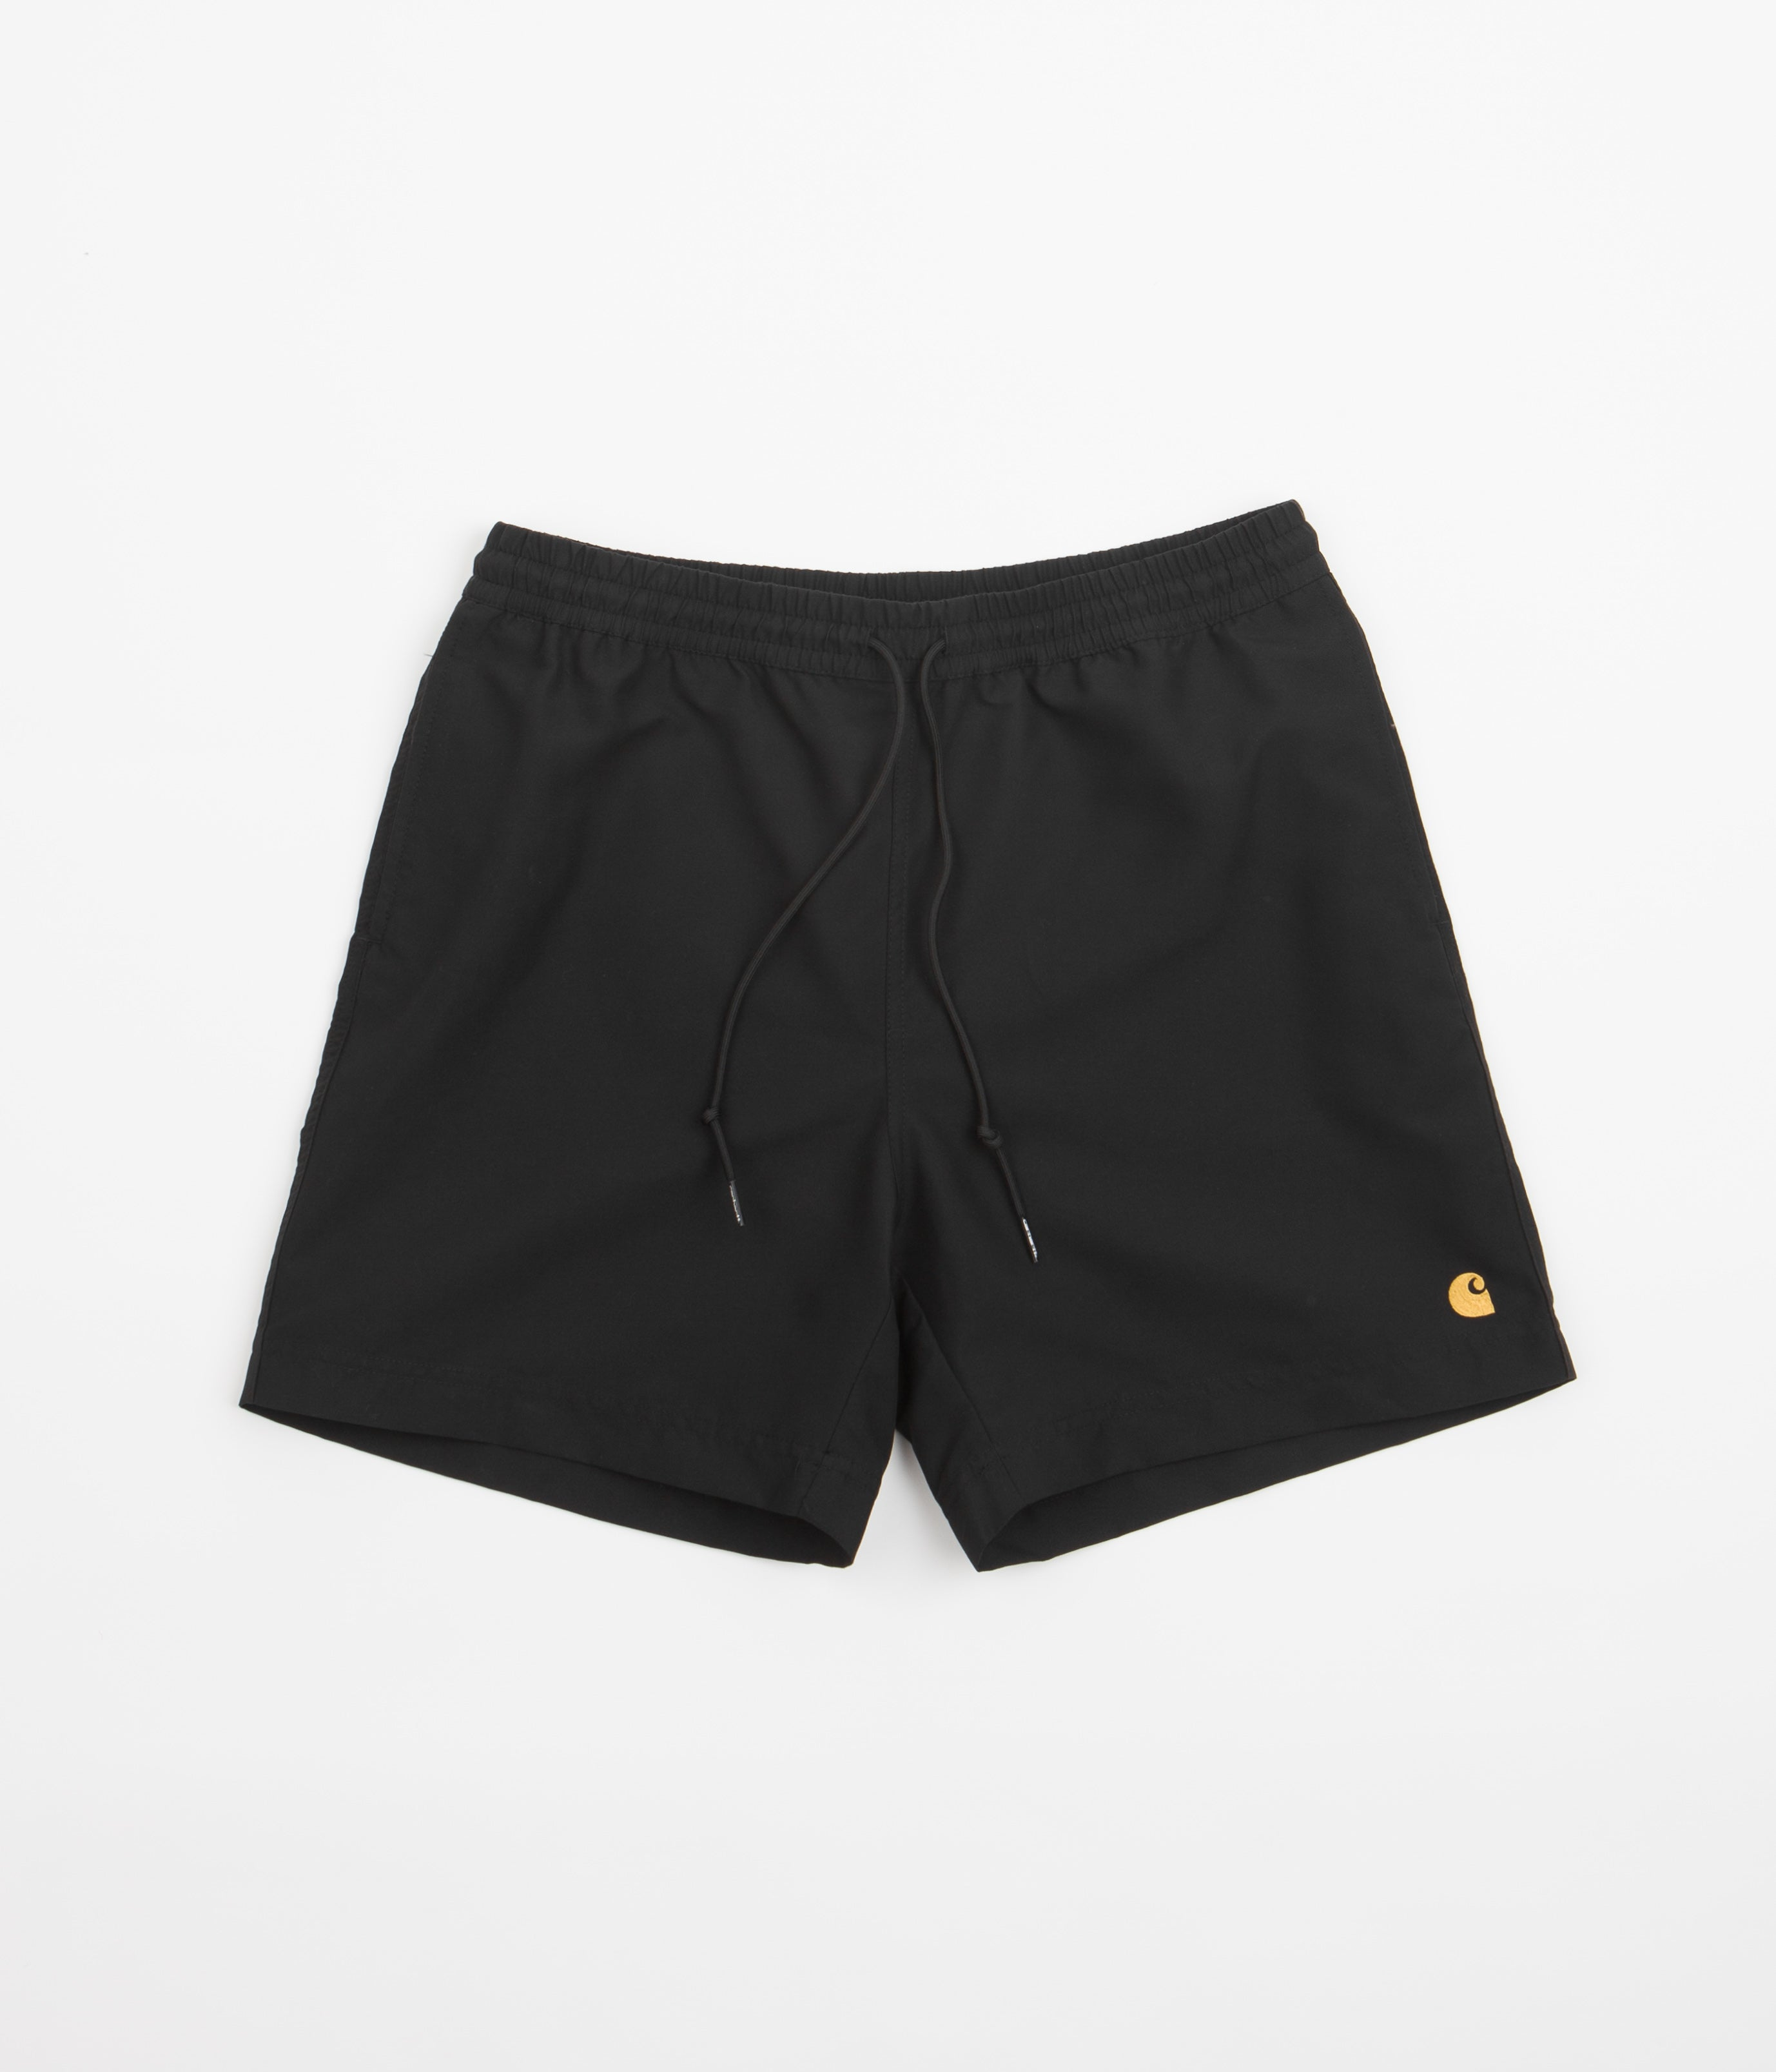 e55bd88f9f Carhartt Chase Swim Trunks - Black / Gold | Flatspot